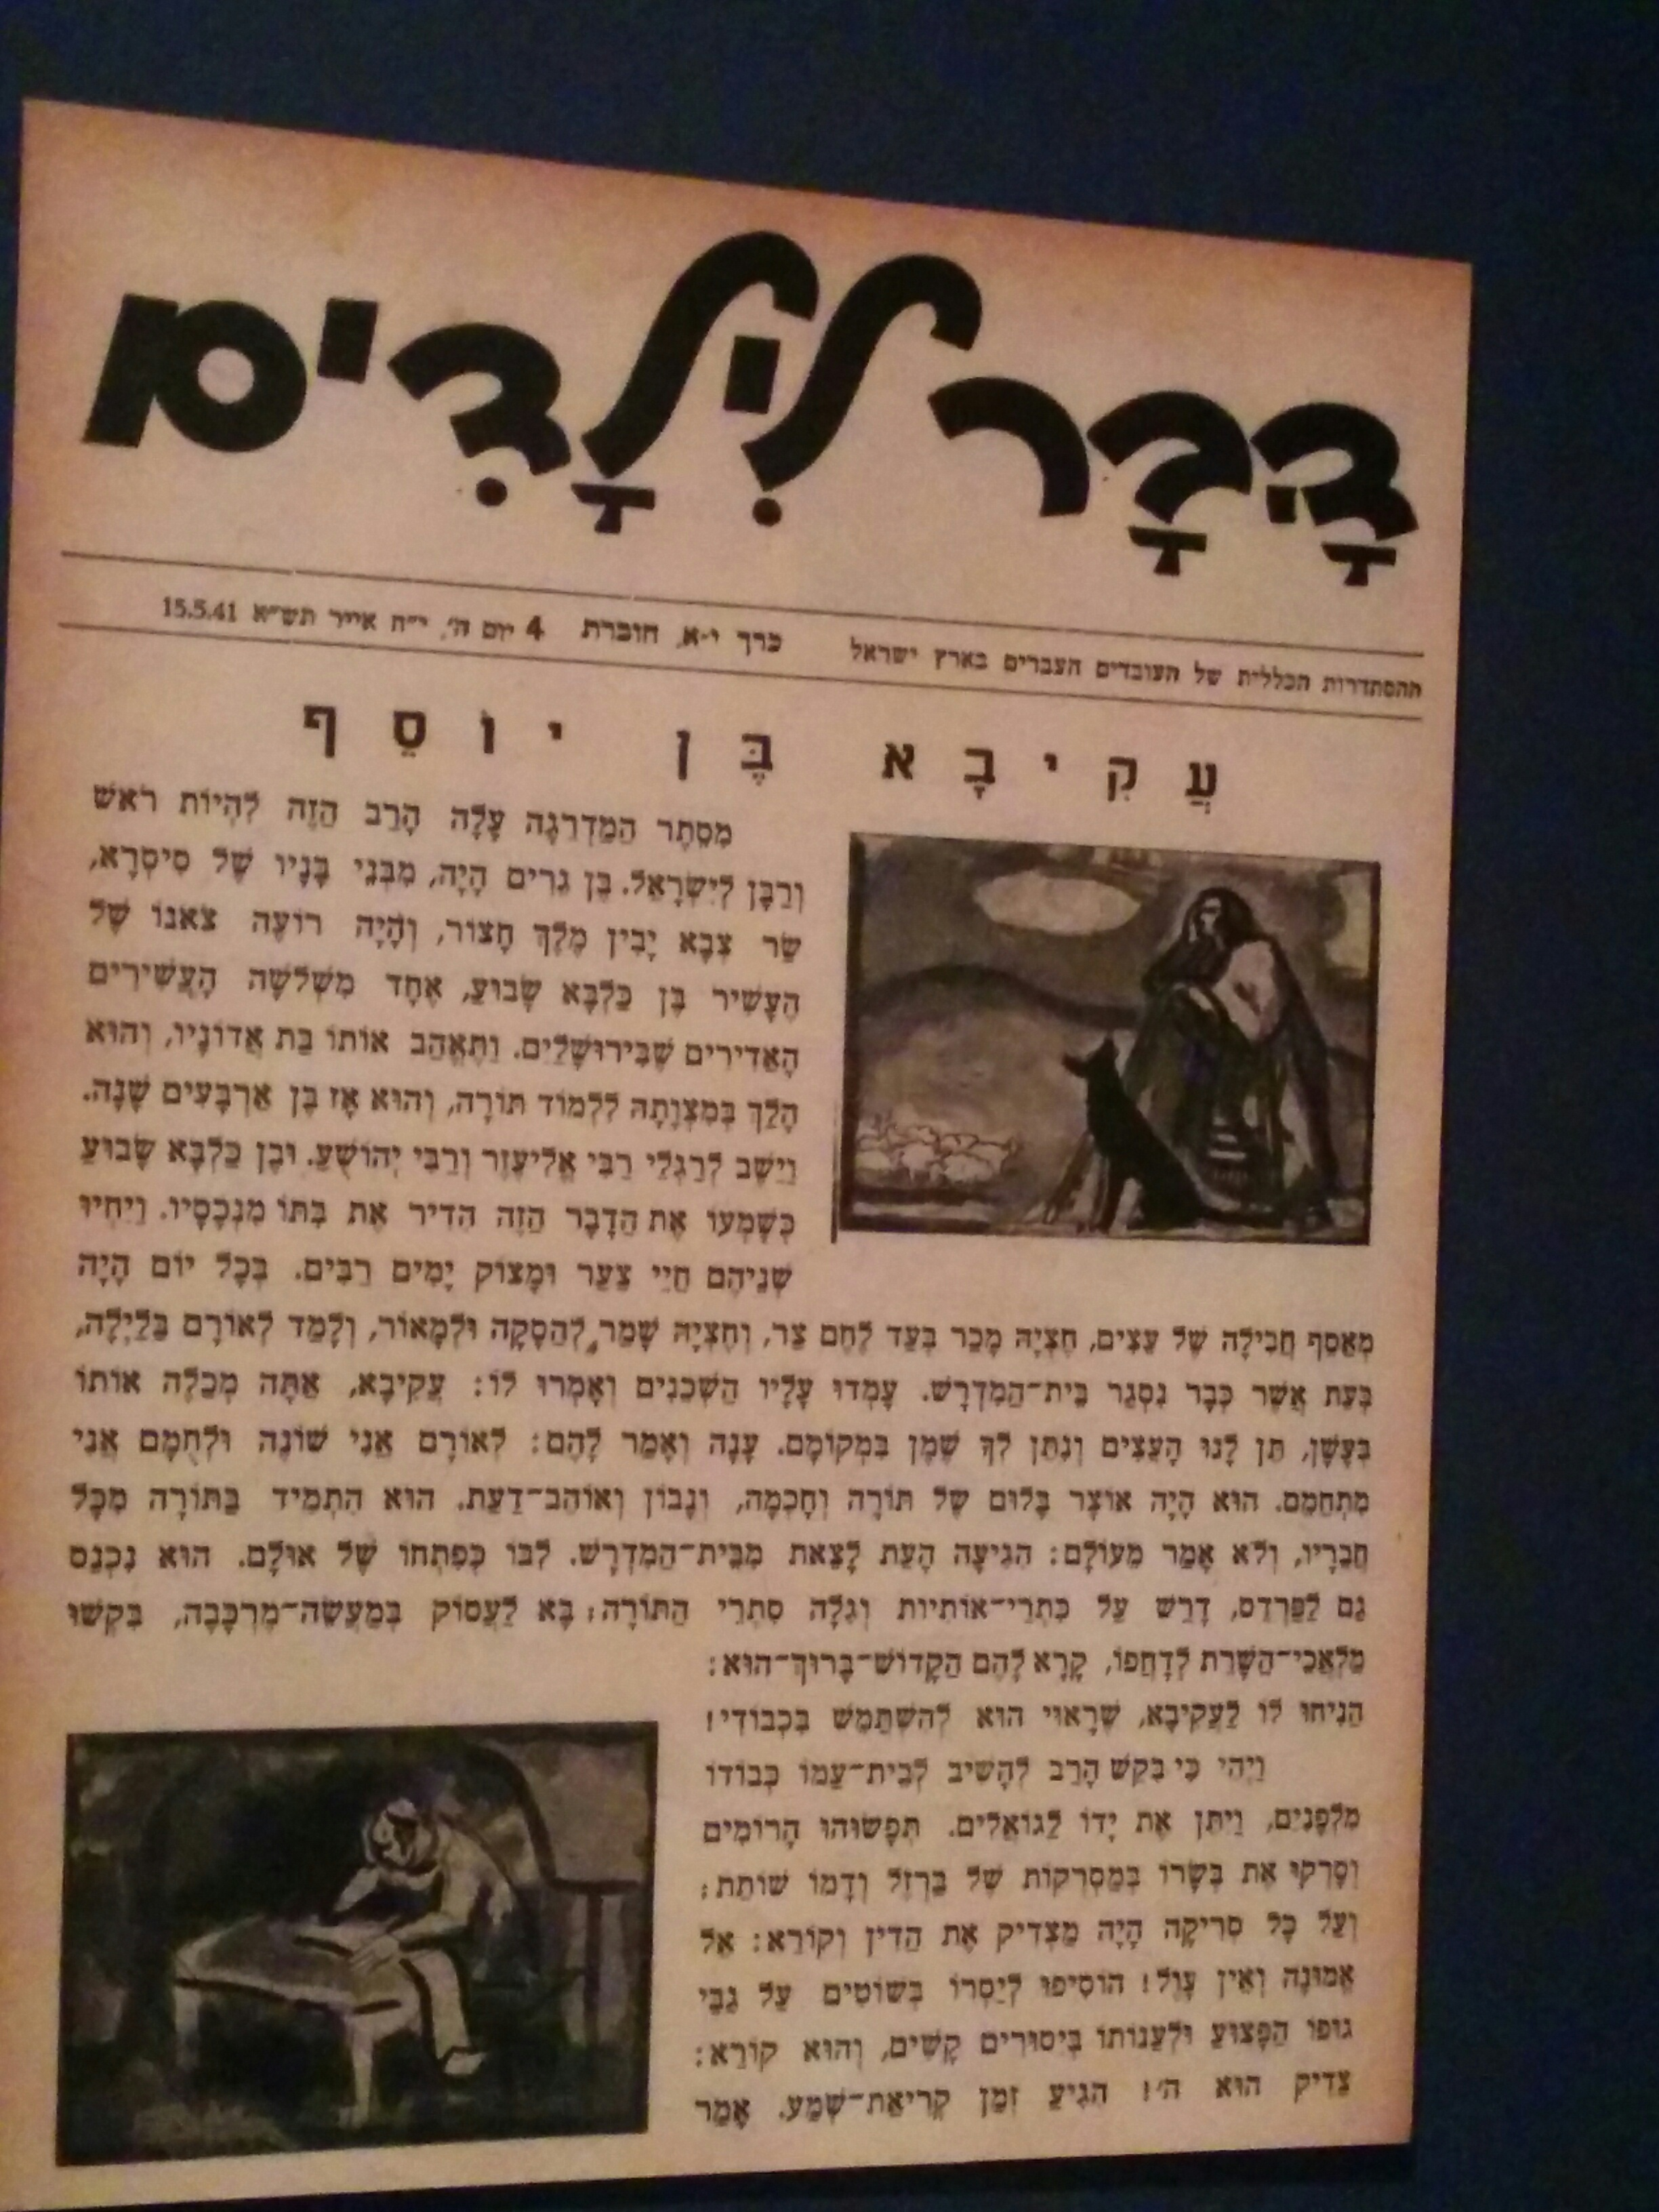 Bar Kokhba in childrens magazine - Shimon Bar Kokhba - Eretz Israel Museum